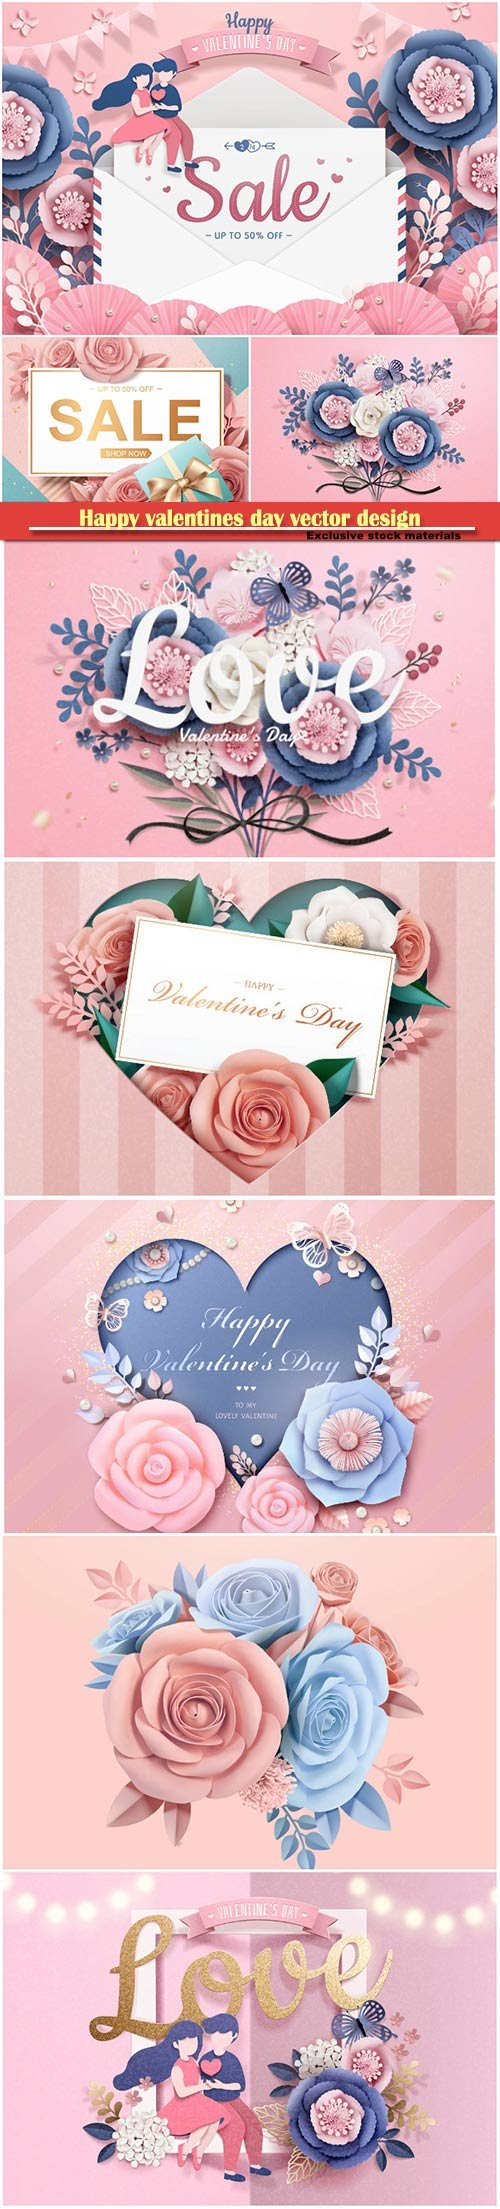 Happy valentines day vector design with heart, balloons, roses in 3d illustration # 8